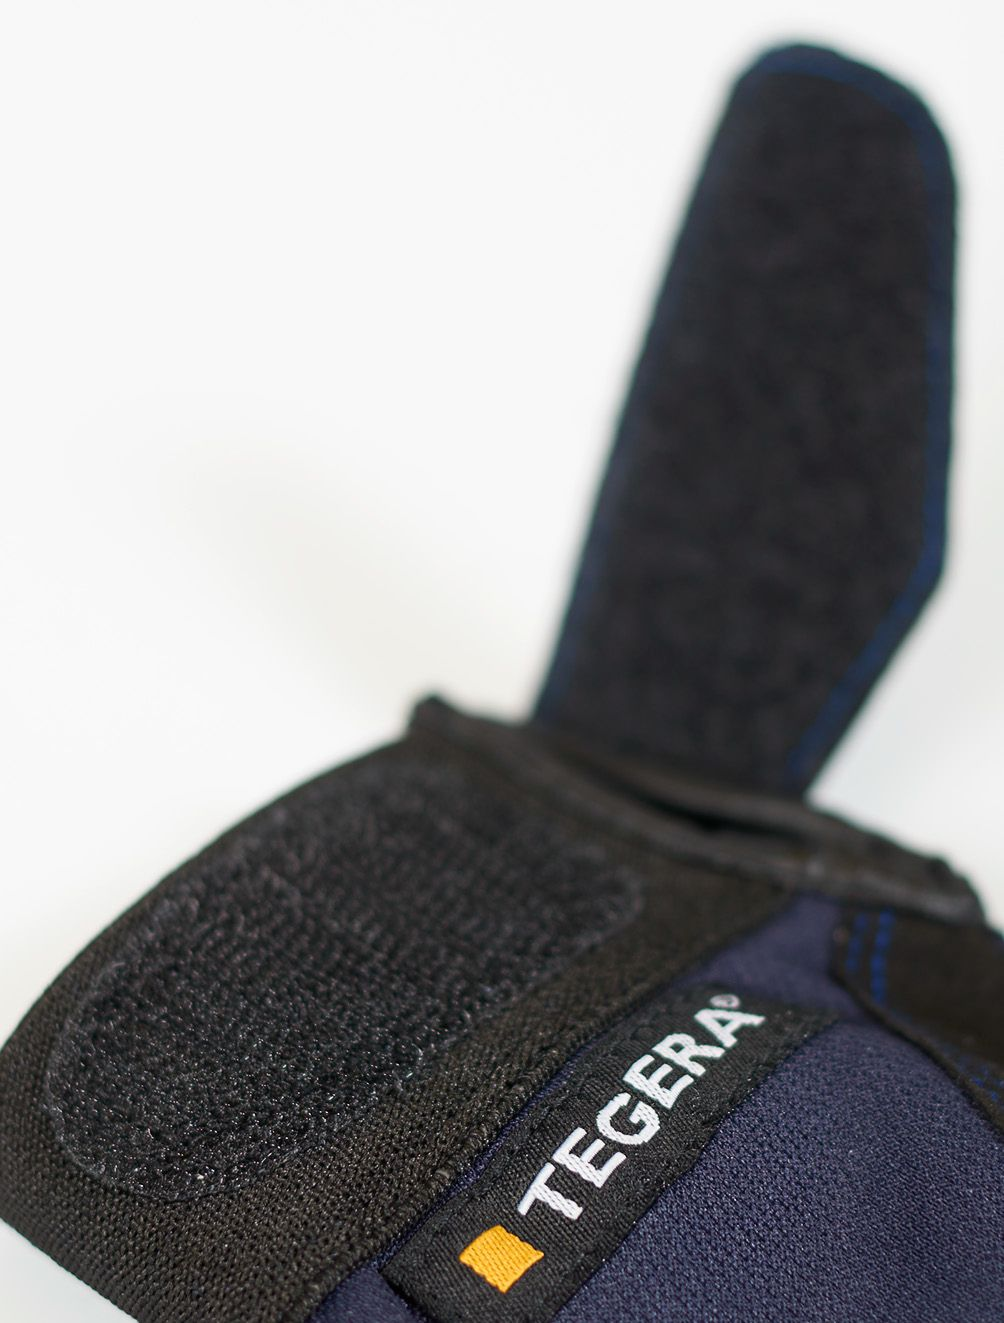 Velcro Wrist Strap for a Secure Fit